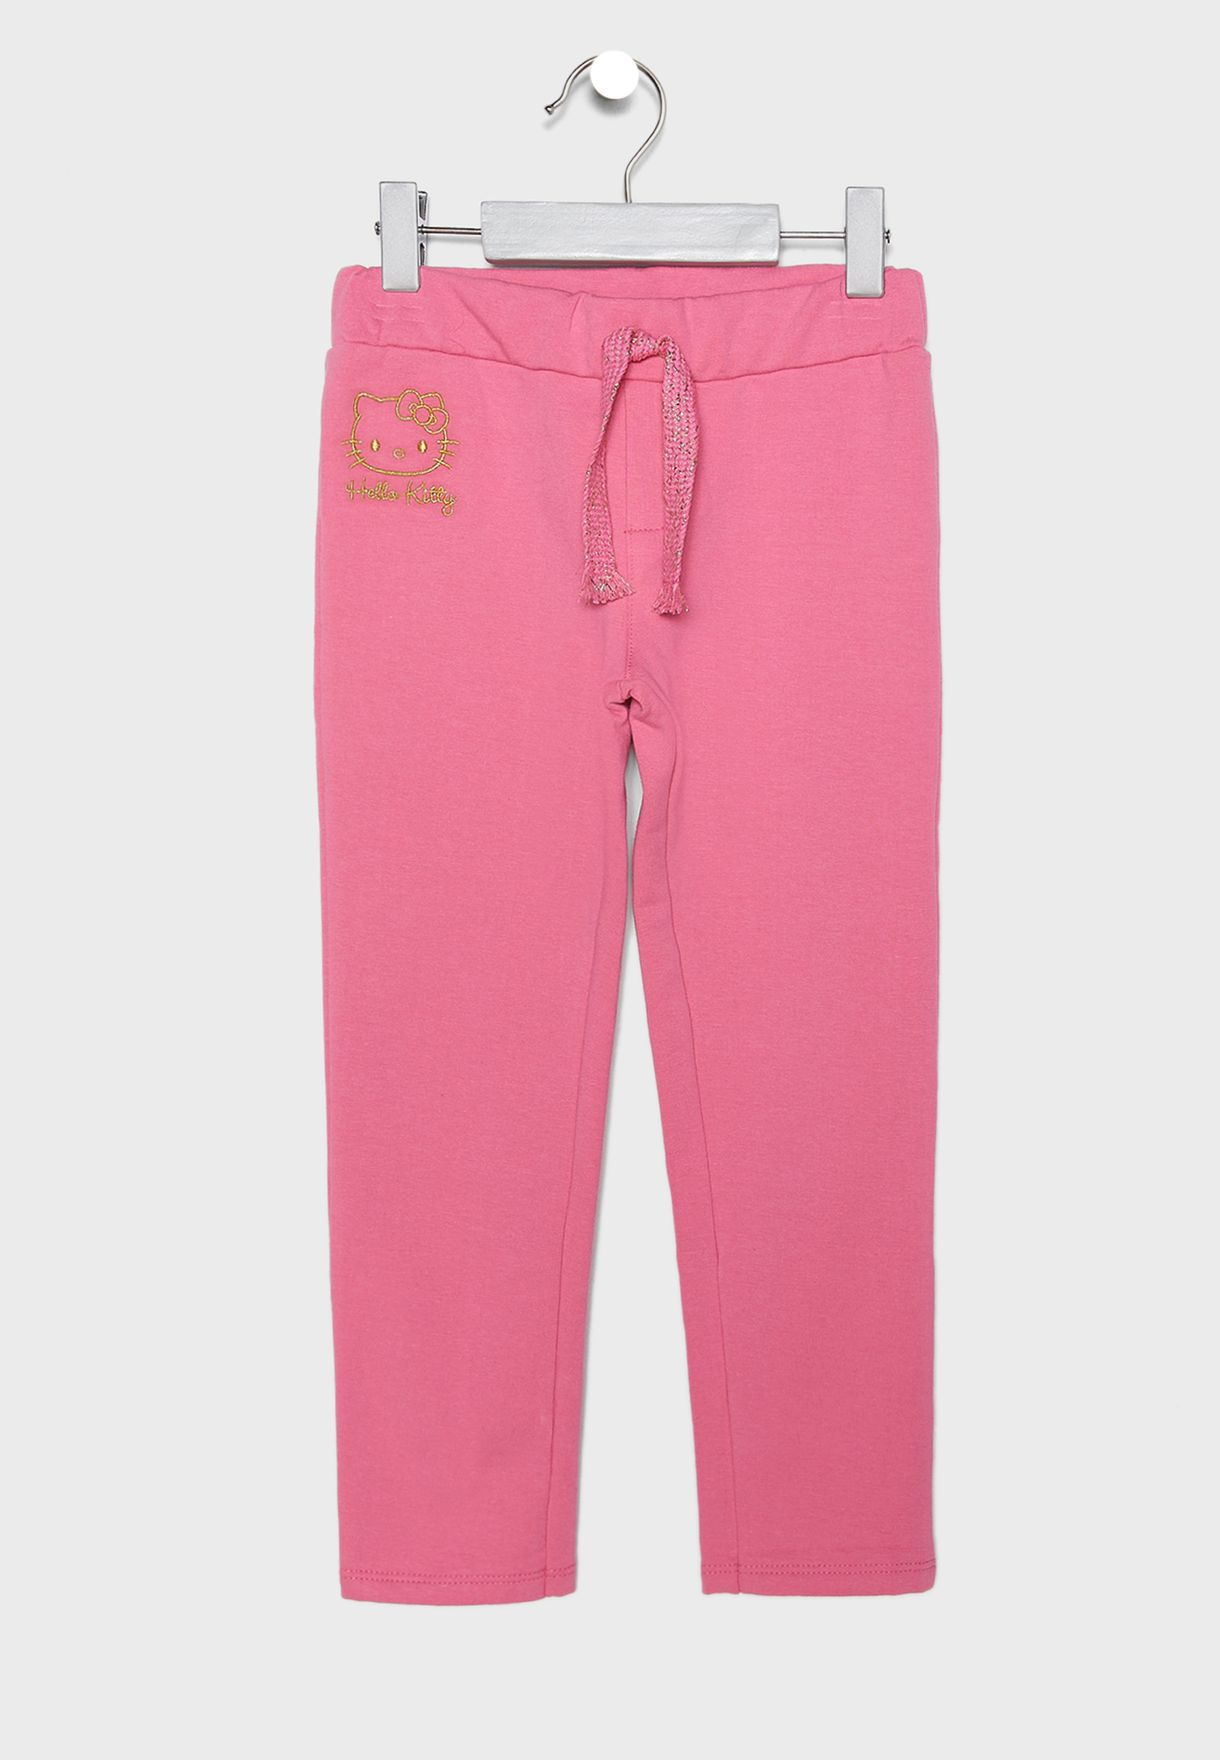 ce63129d6 Shop Hello Kitty pink Little Logo Sweatpants 87835 for Kids in UAE ...